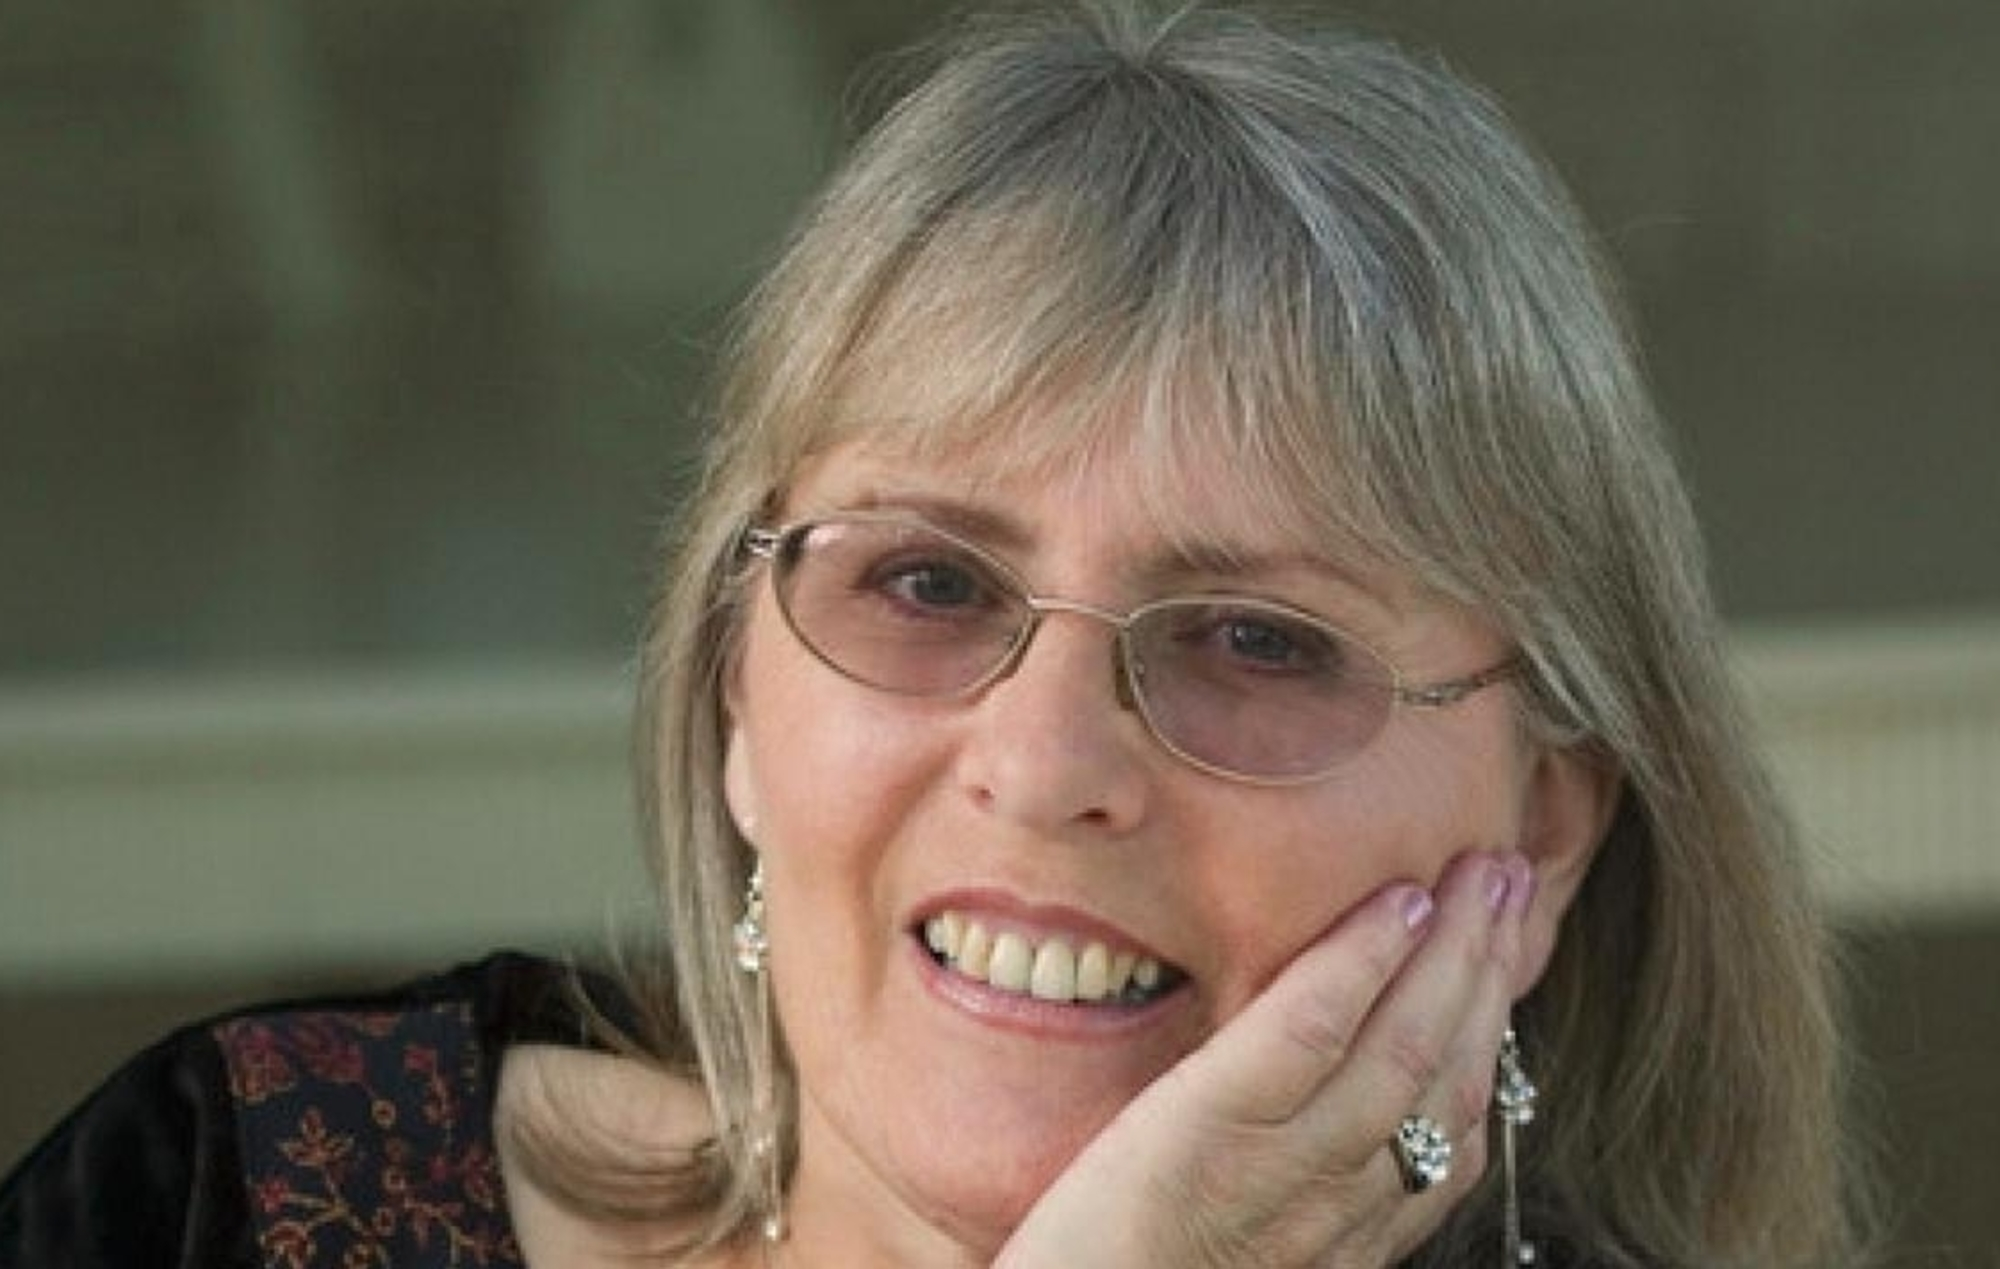 Fairport Convention singer Judy Dyble has died, Shop Ticket Snatchers